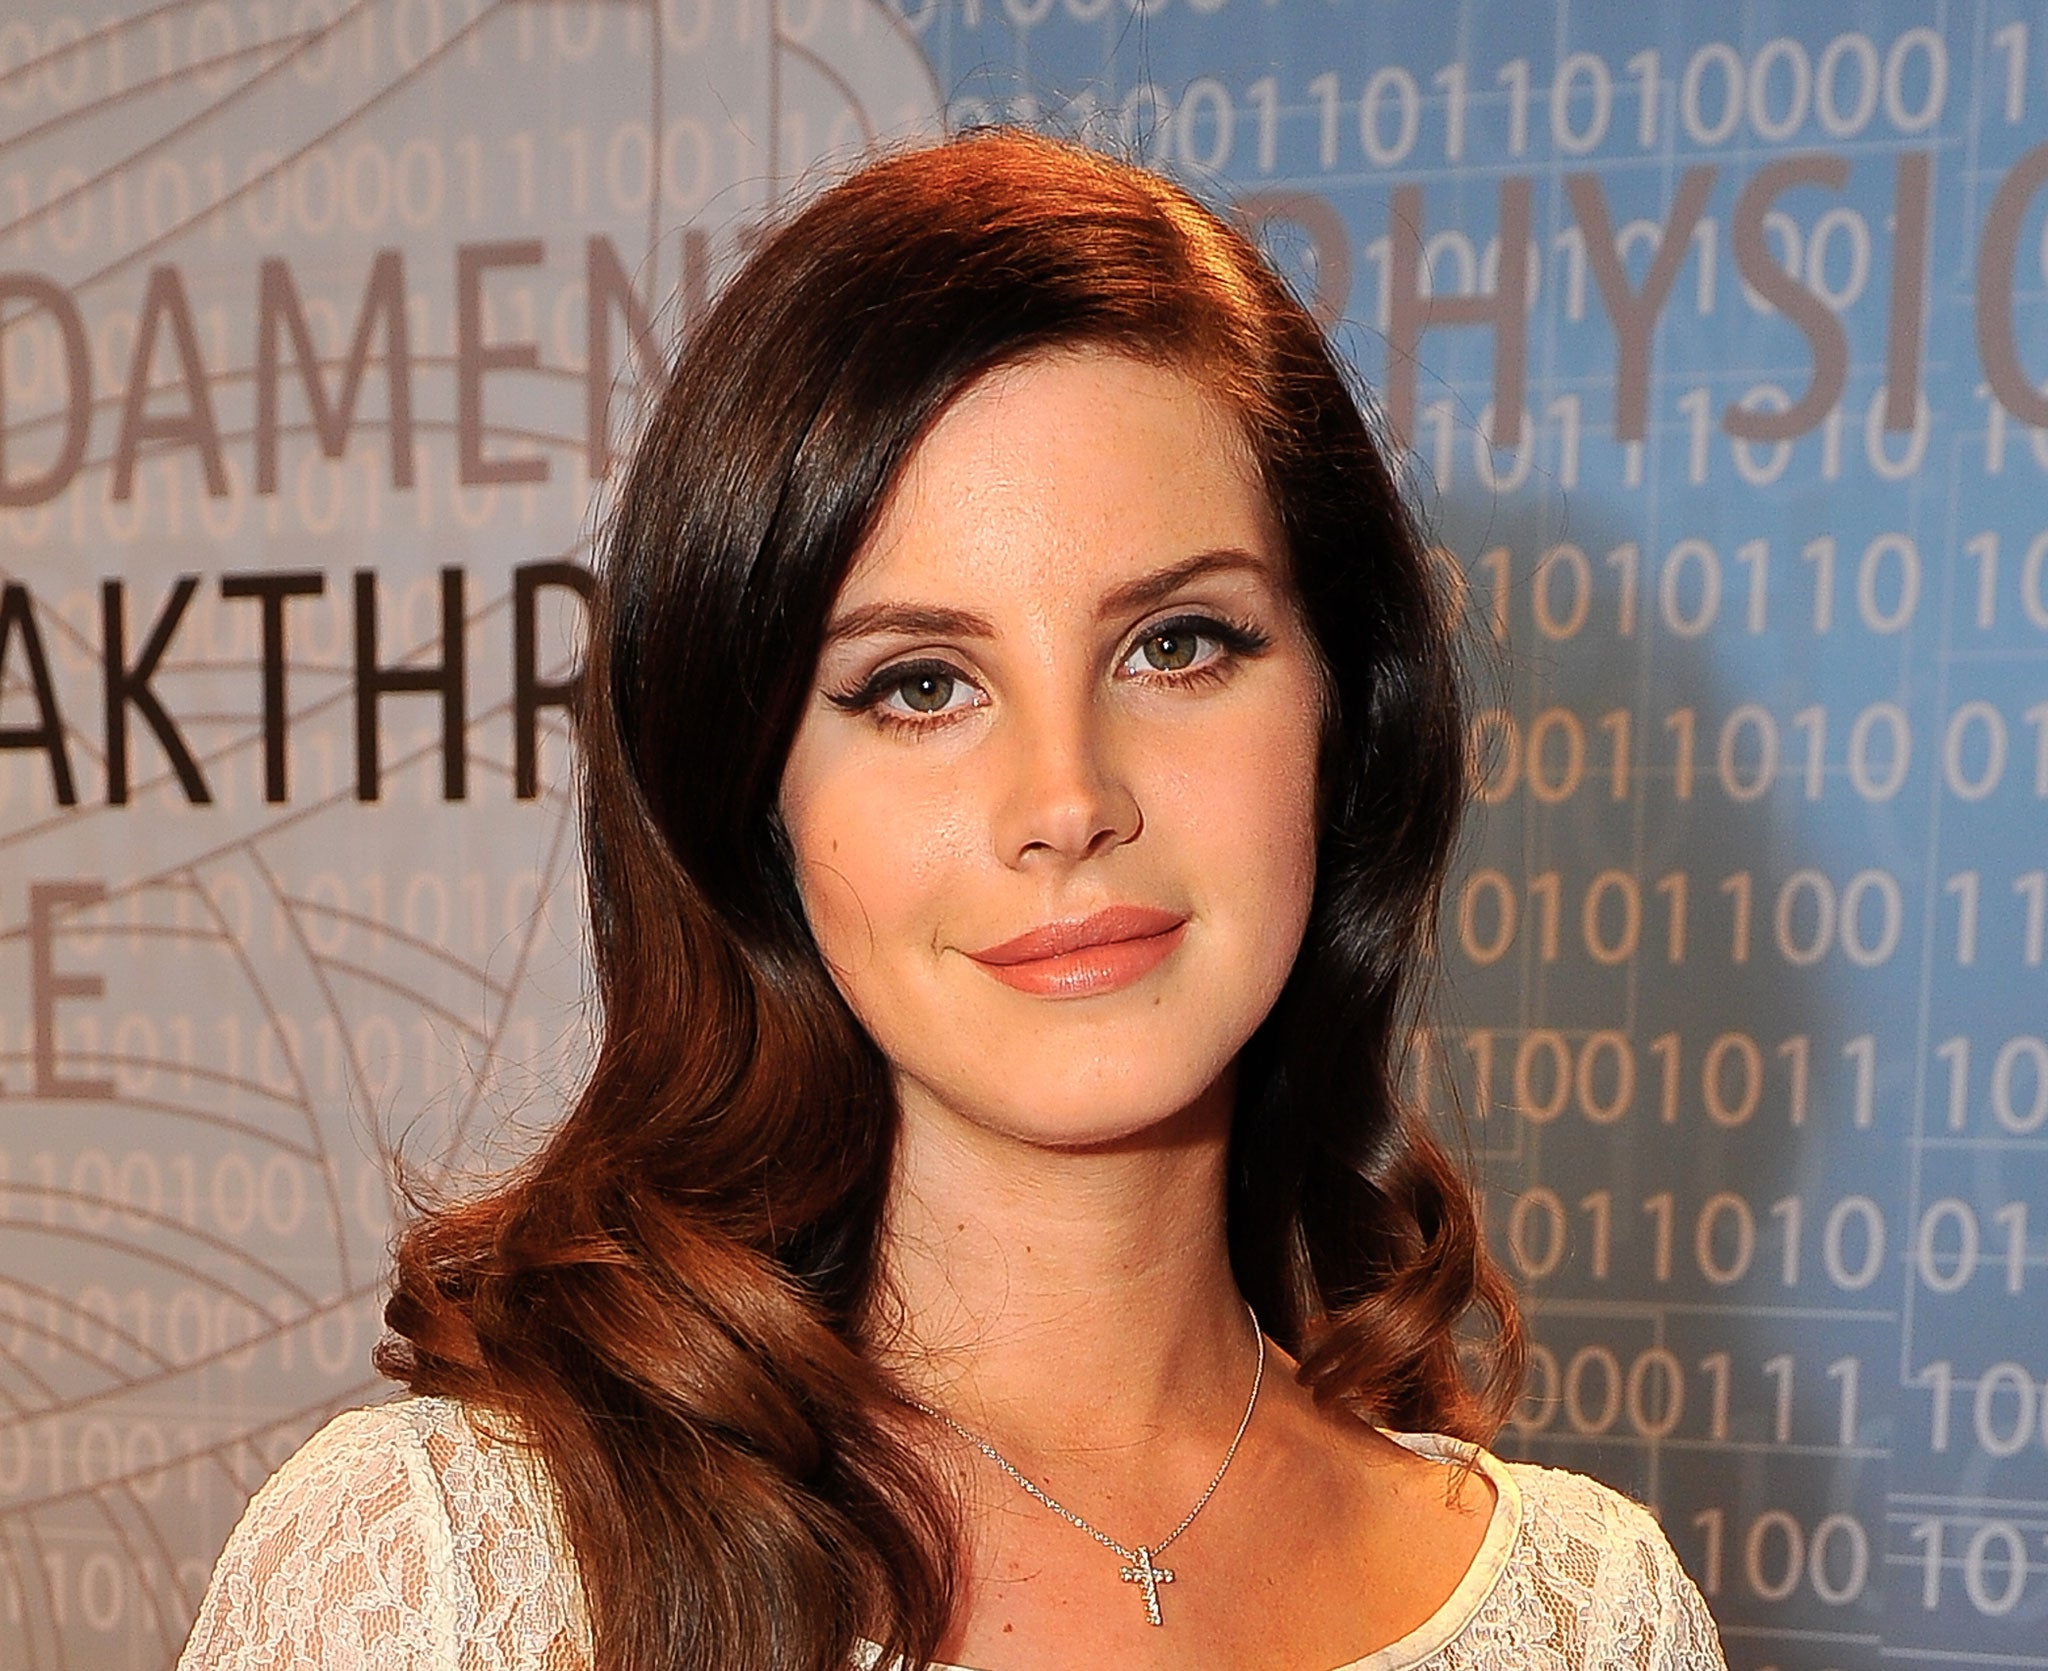 Lana Del Rey angrily responds to 'I wish I was dead' quote ...